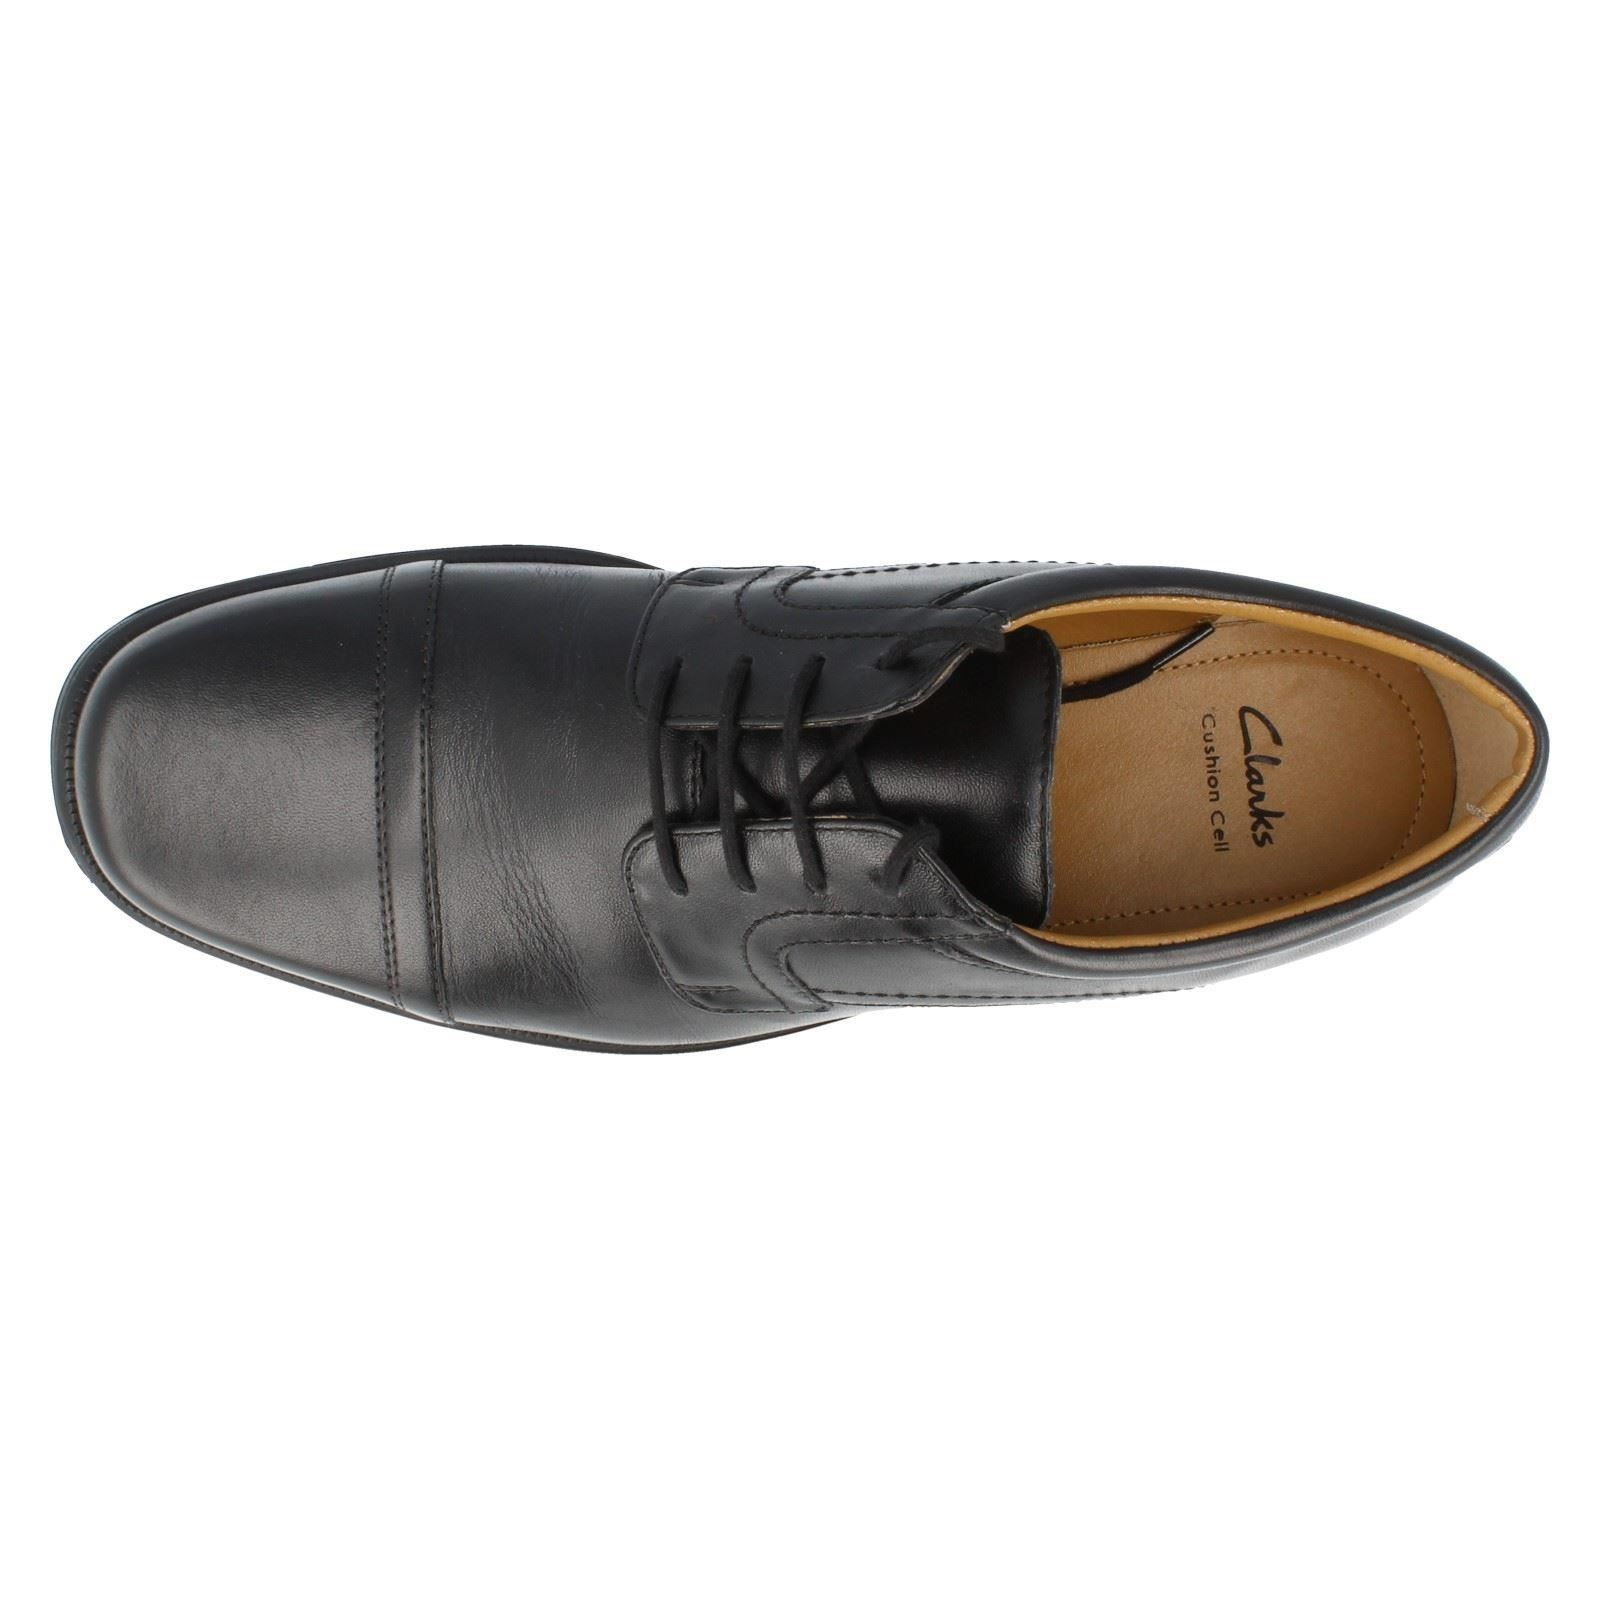 Mens Handle Shoes Style The Cap N Nero ~ Clarks wUUrIz